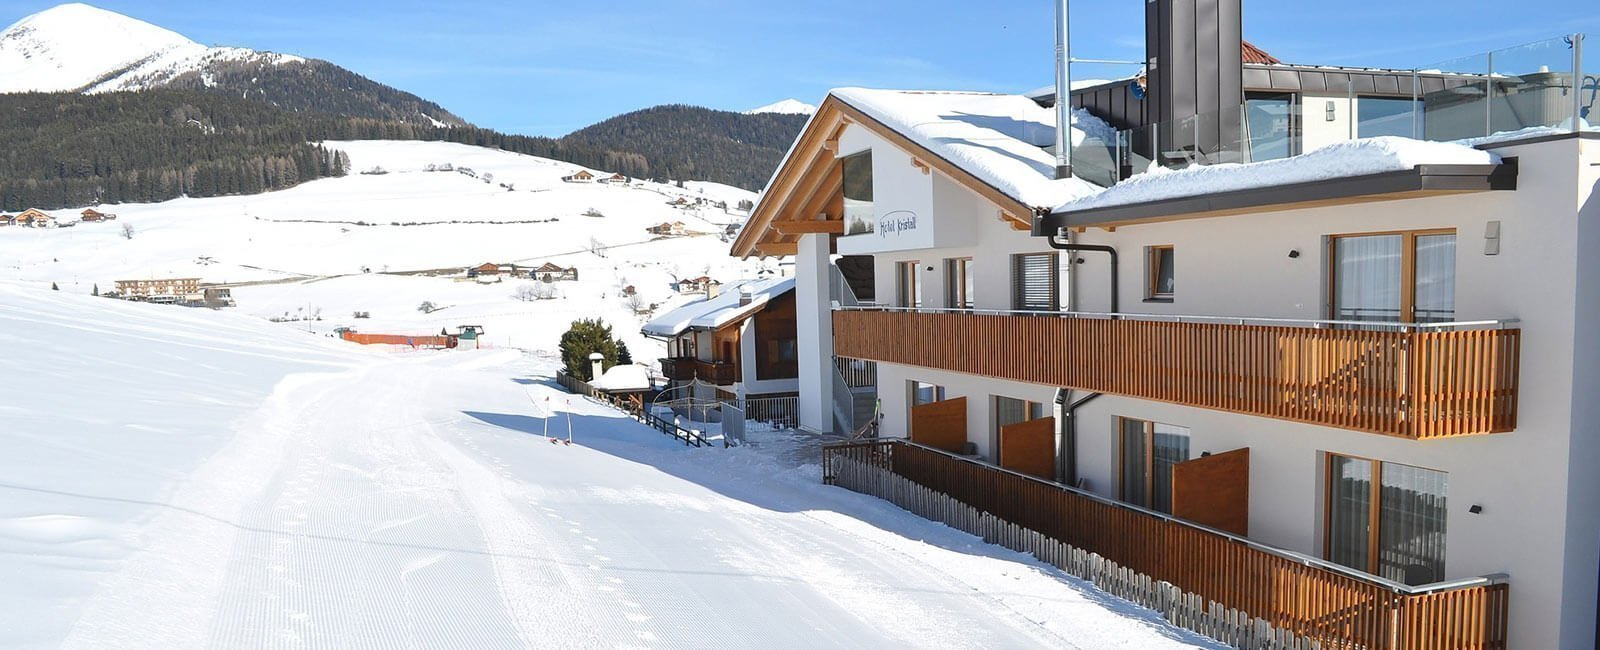 Hotel Kristall Maranza- Winter holidays South Tyrol - direct next to the Ski slope